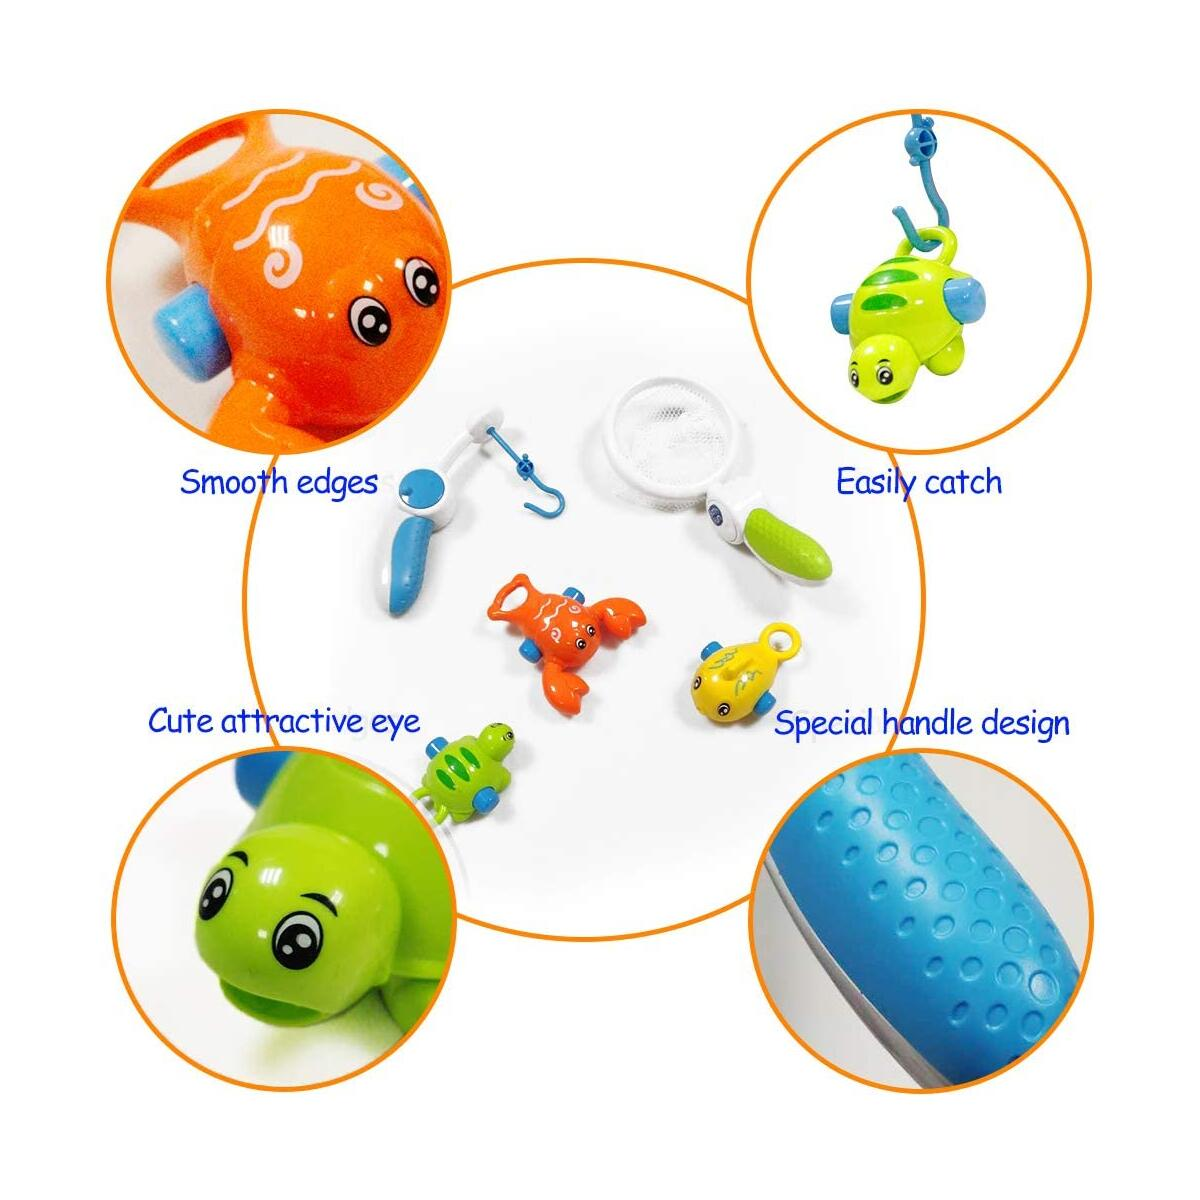 WISHTIME Baby Bath Toys, Fishing Floating Squirts Toy with Cute Ocean Animals Bath Squirters and Fishing Net, Water Toys for Kids, Birthday Gifts for Boys & Girls